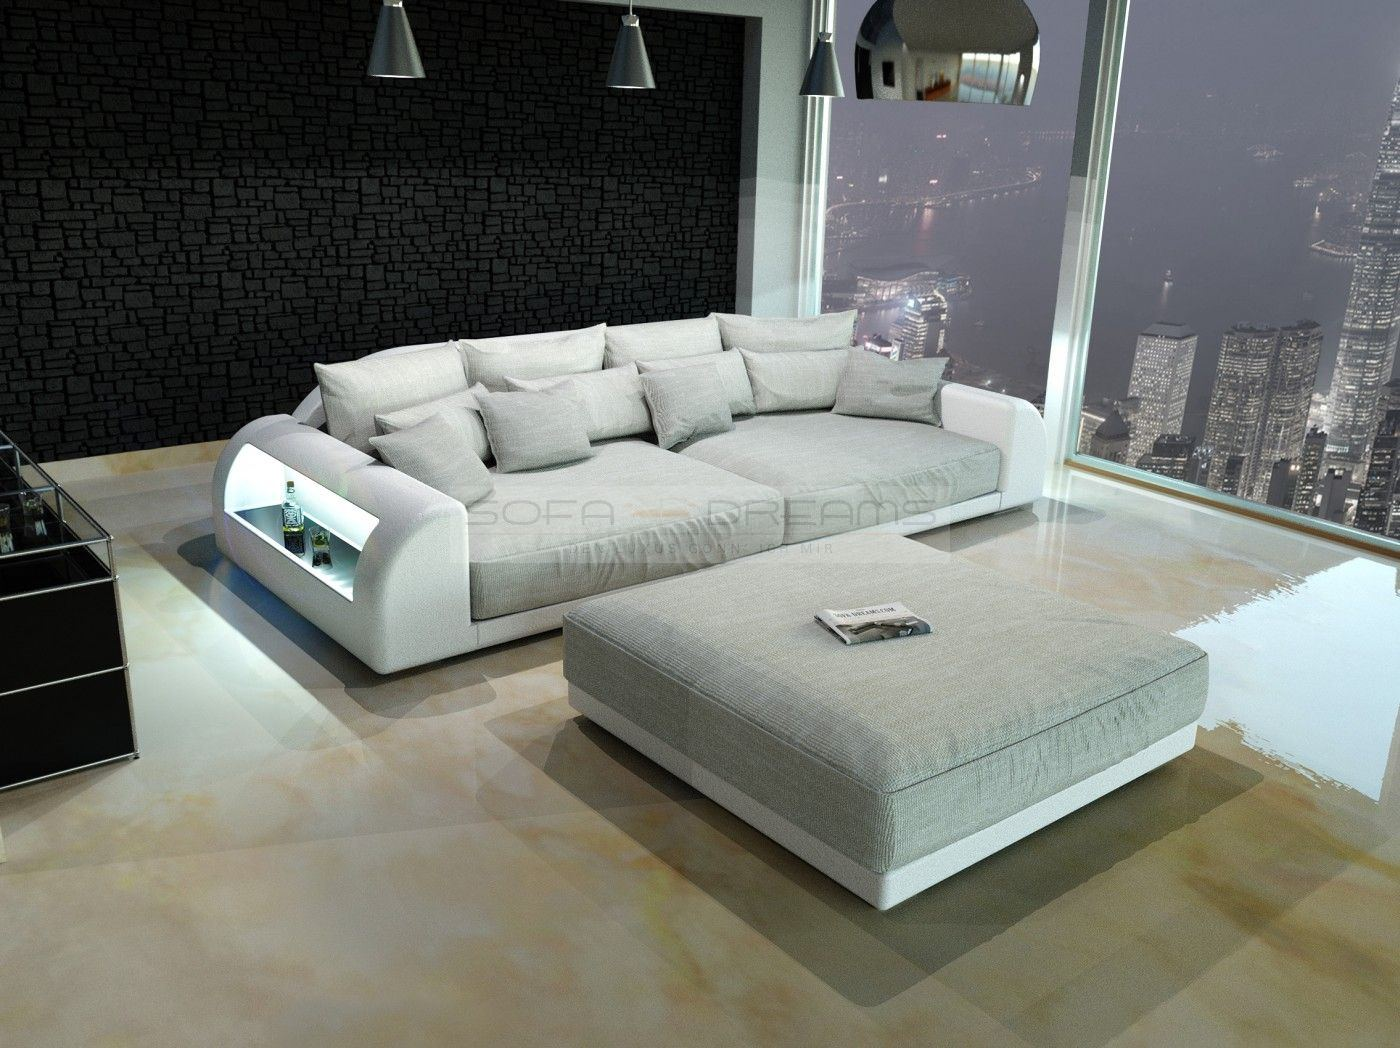 xxl big sofa miami megasofa with illumination big sofa mega couch ebay. Black Bedroom Furniture Sets. Home Design Ideas